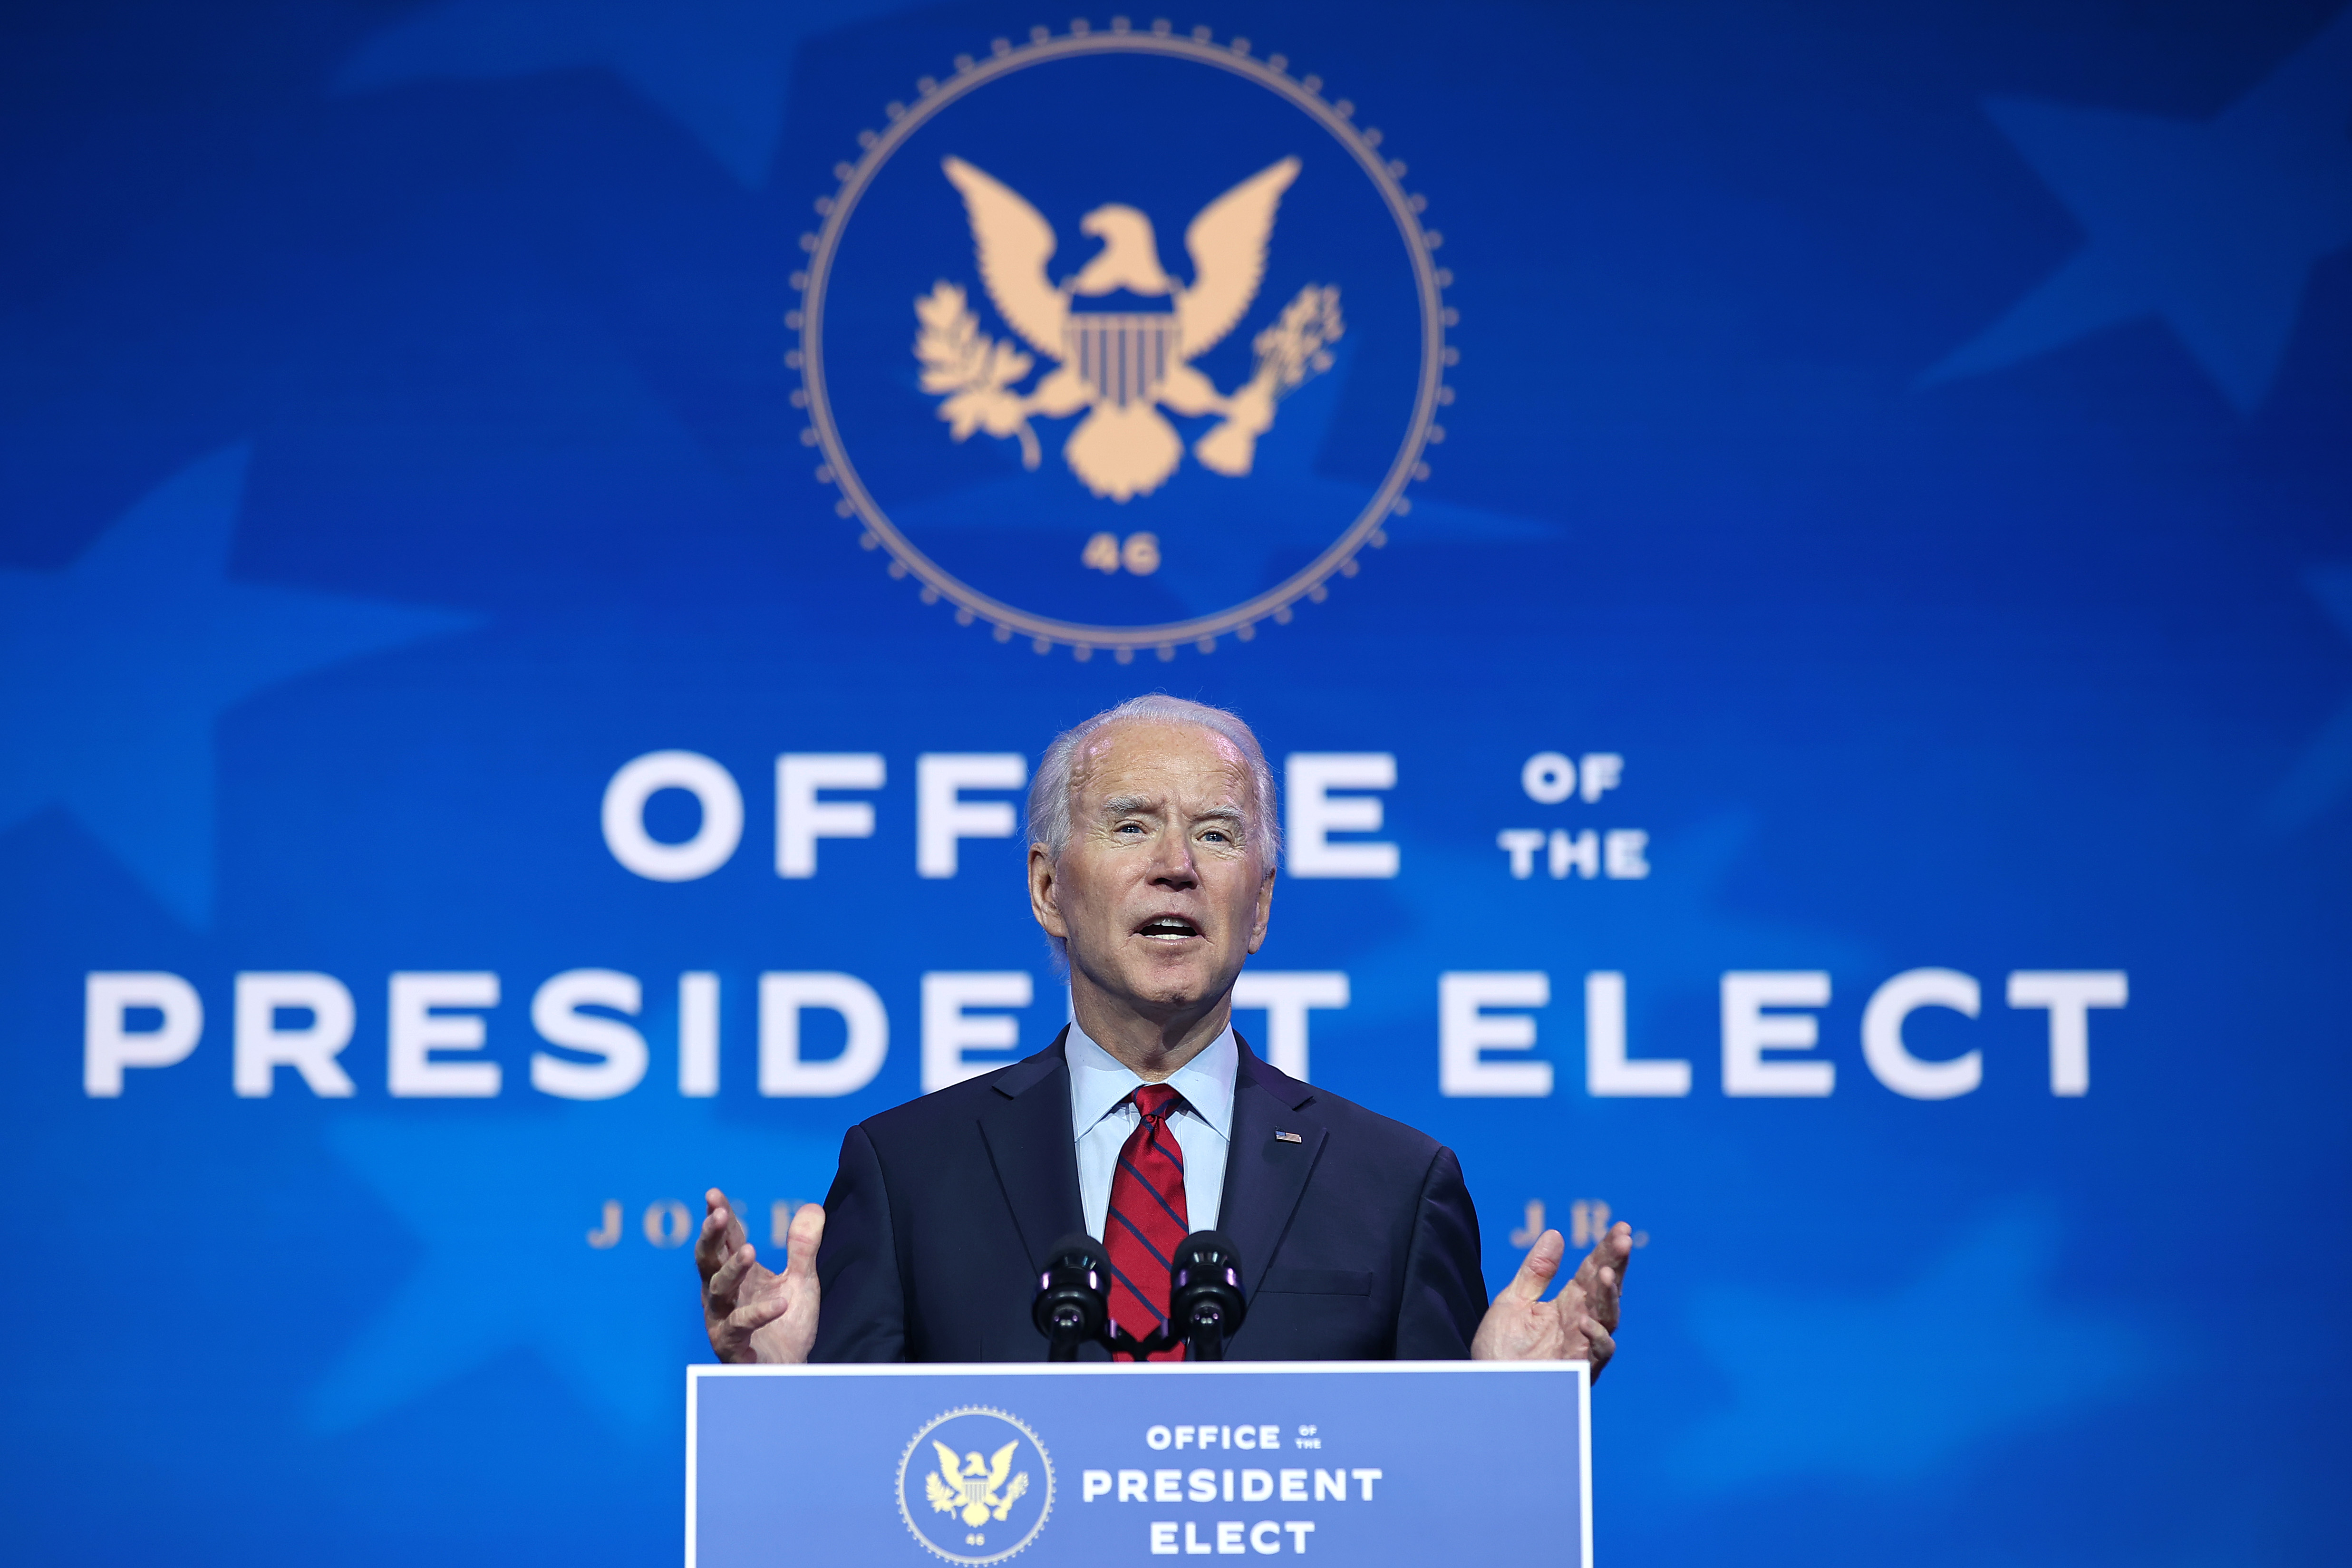 Joe Biden announces the members of his health team, including his pick for secretary of Health and Human Services Xavier Becerra, at the Queen Theater December 08, 2020 in Wilmington, Delaware.